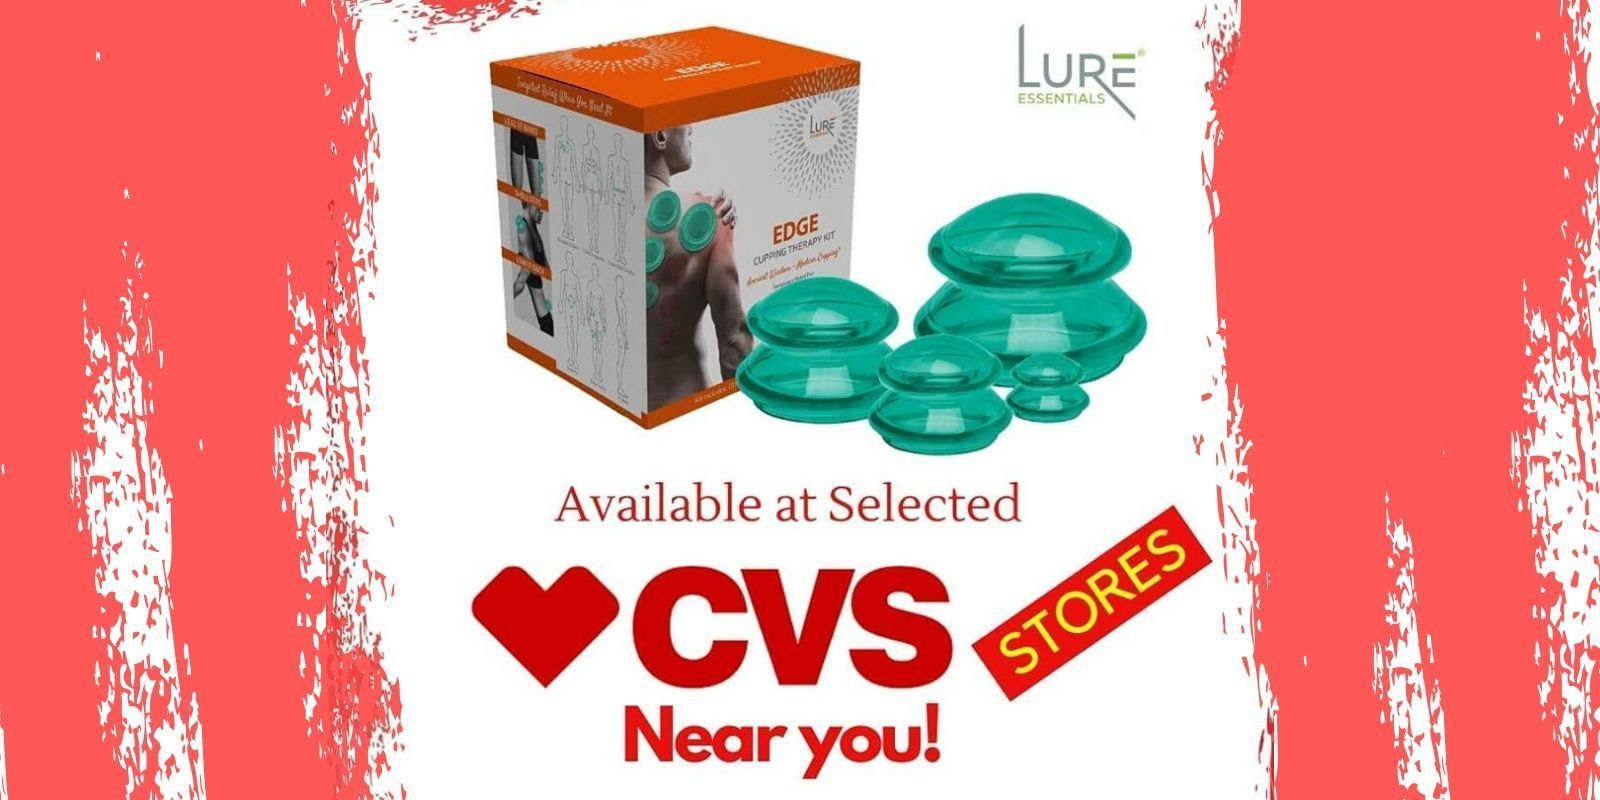 Lure Essentials Takes Cupping Therapy Mainstream with Launch at CVS Stores - Lure Essentials